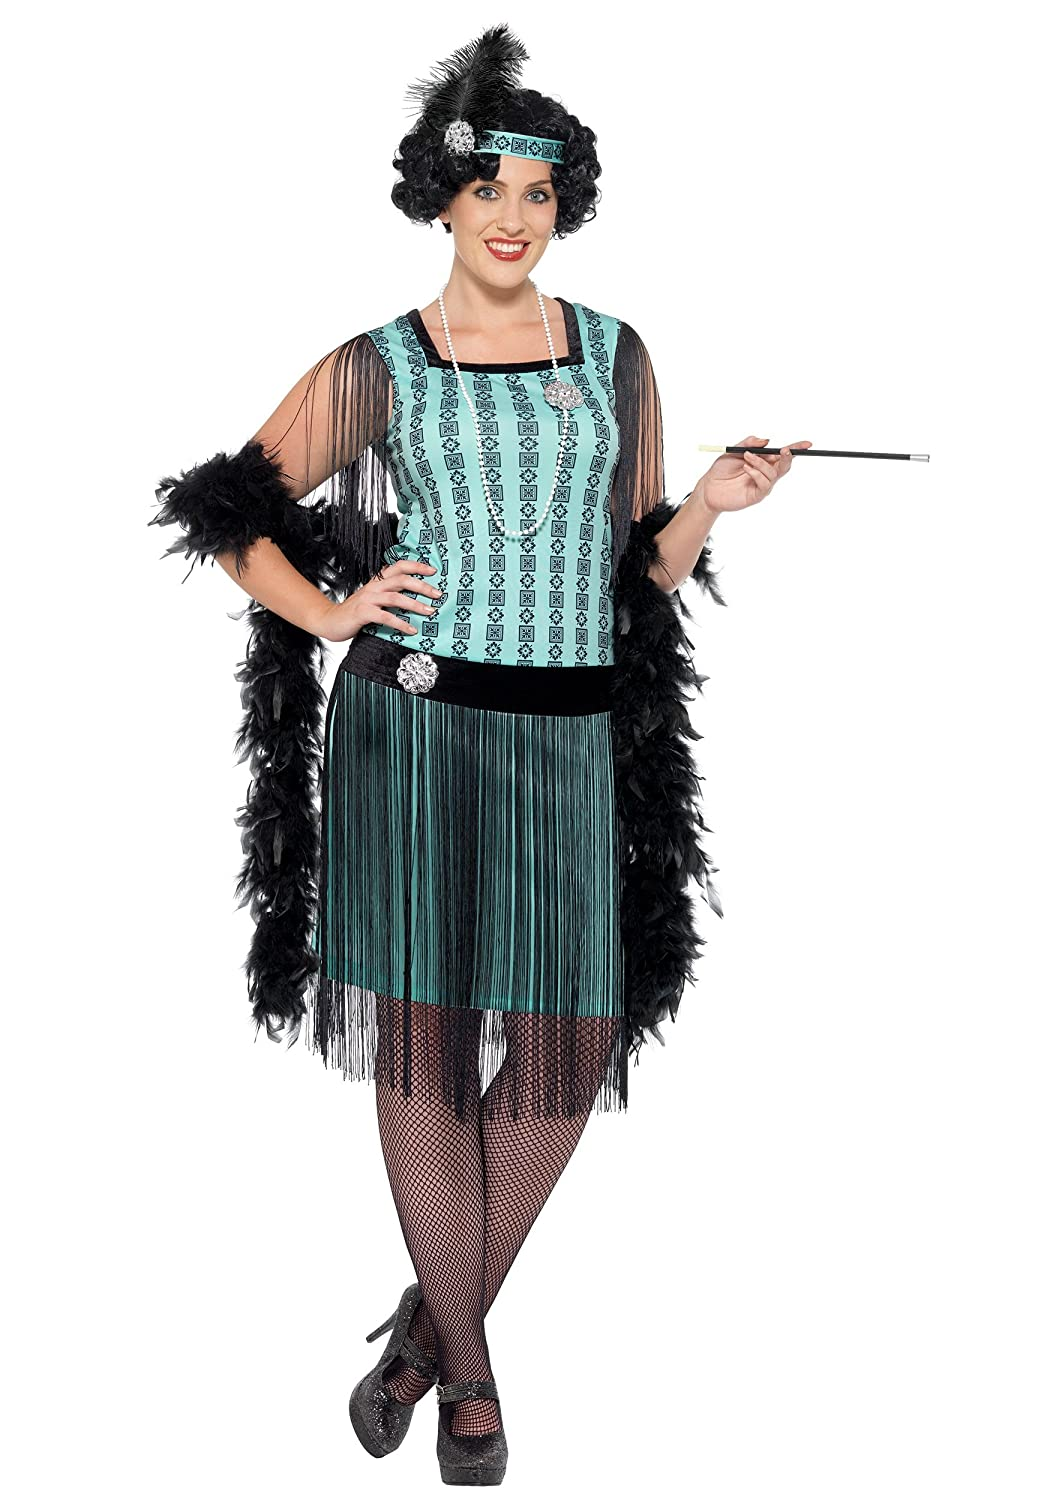 Flapper Costumes, Flapper Girl Costume Smiffys womens Womens Plus Size 1920s Mint Coco Flapper Costume $59.99 AT vintagedancer.com